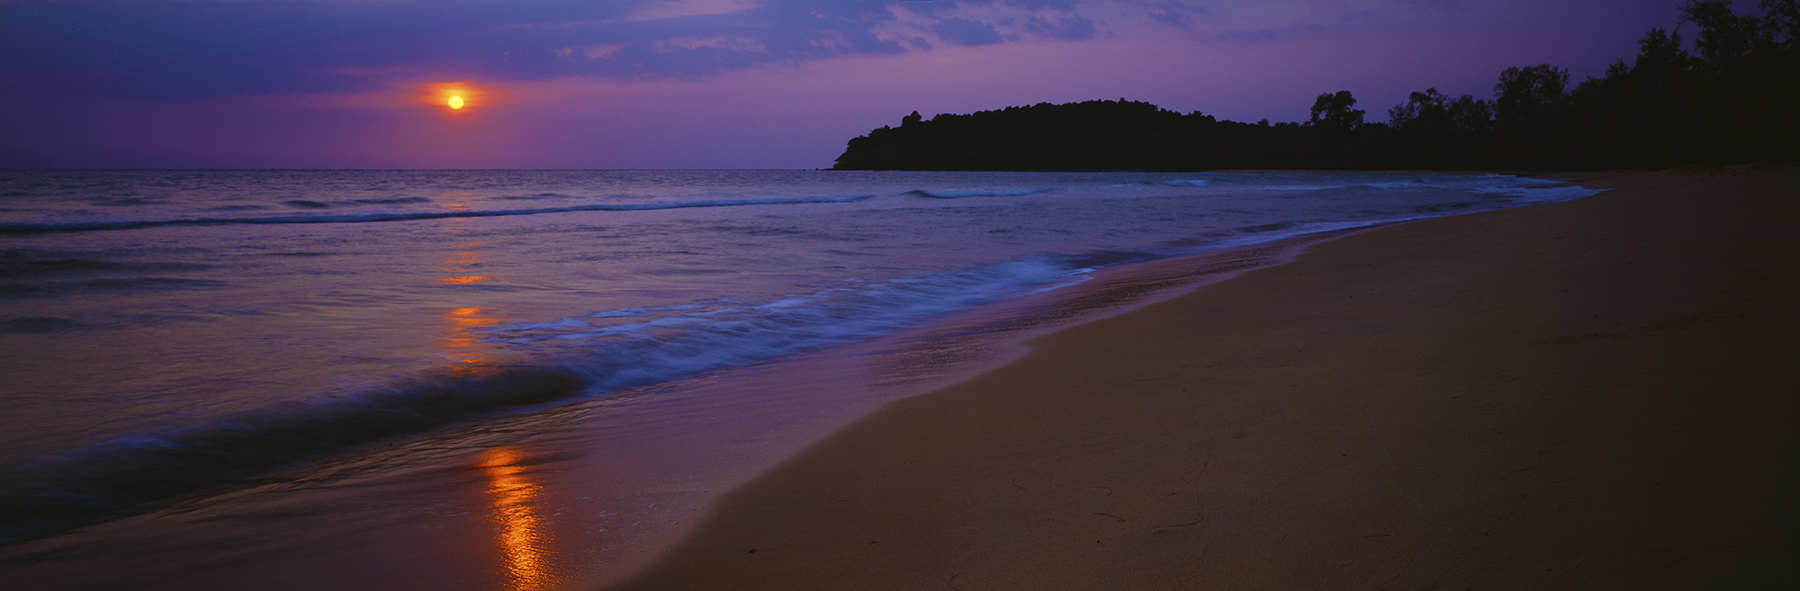 Koh Russei Serenity, Cambodia. A Limited Edition Fine Art Landscape Photograph by Richard Hume